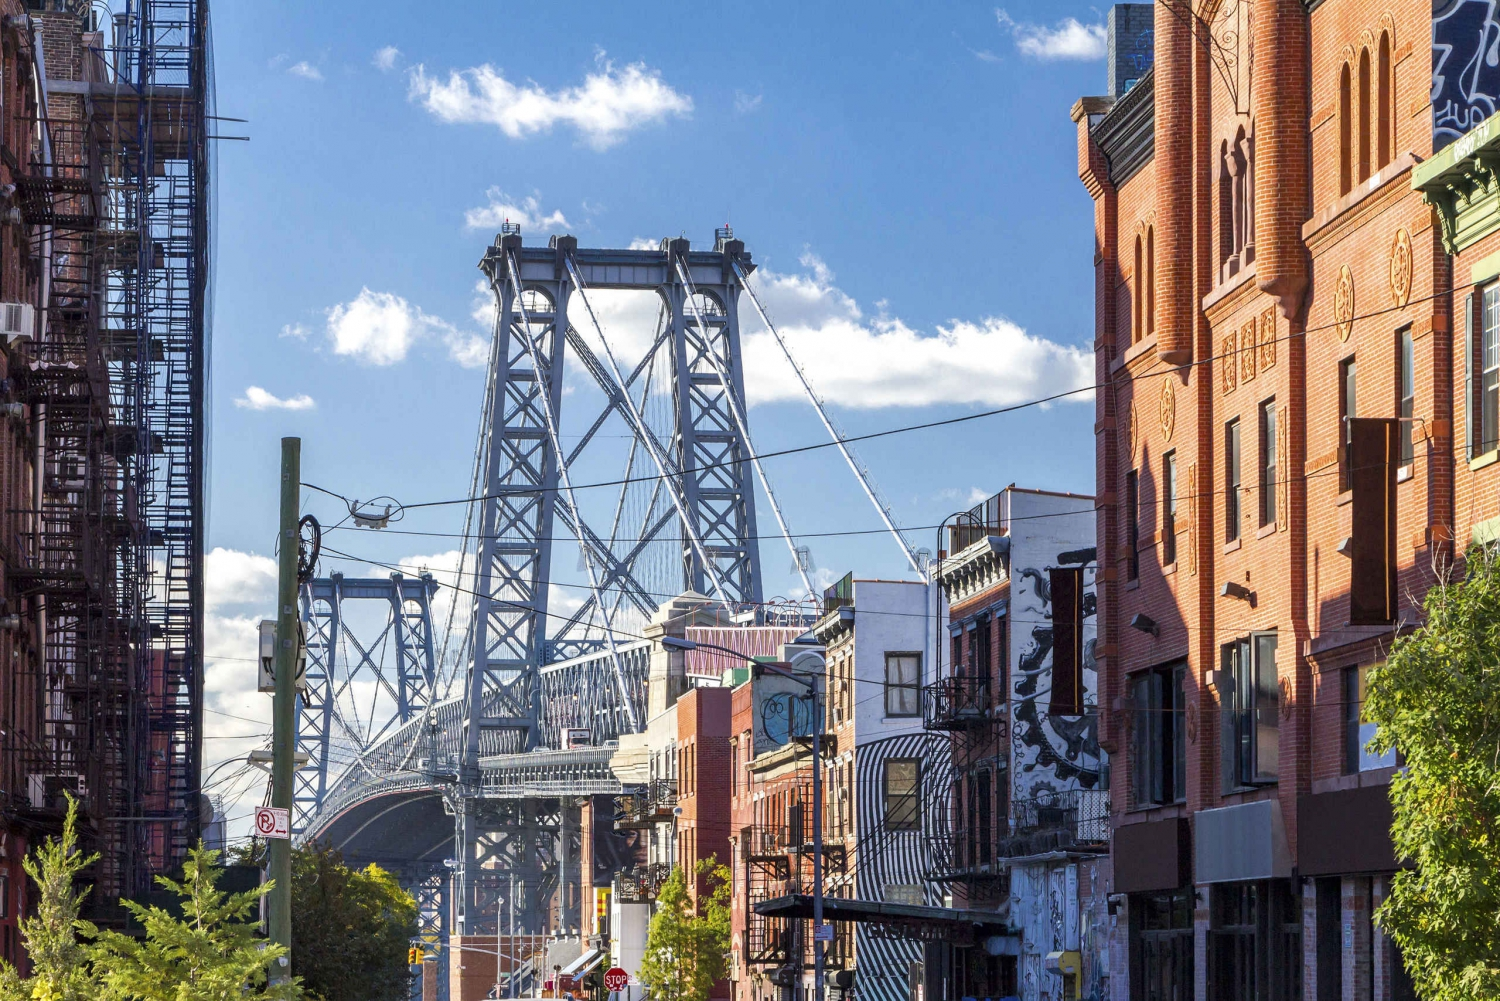 New Bronx, Queens, and Brooklyn Half-Day Tour